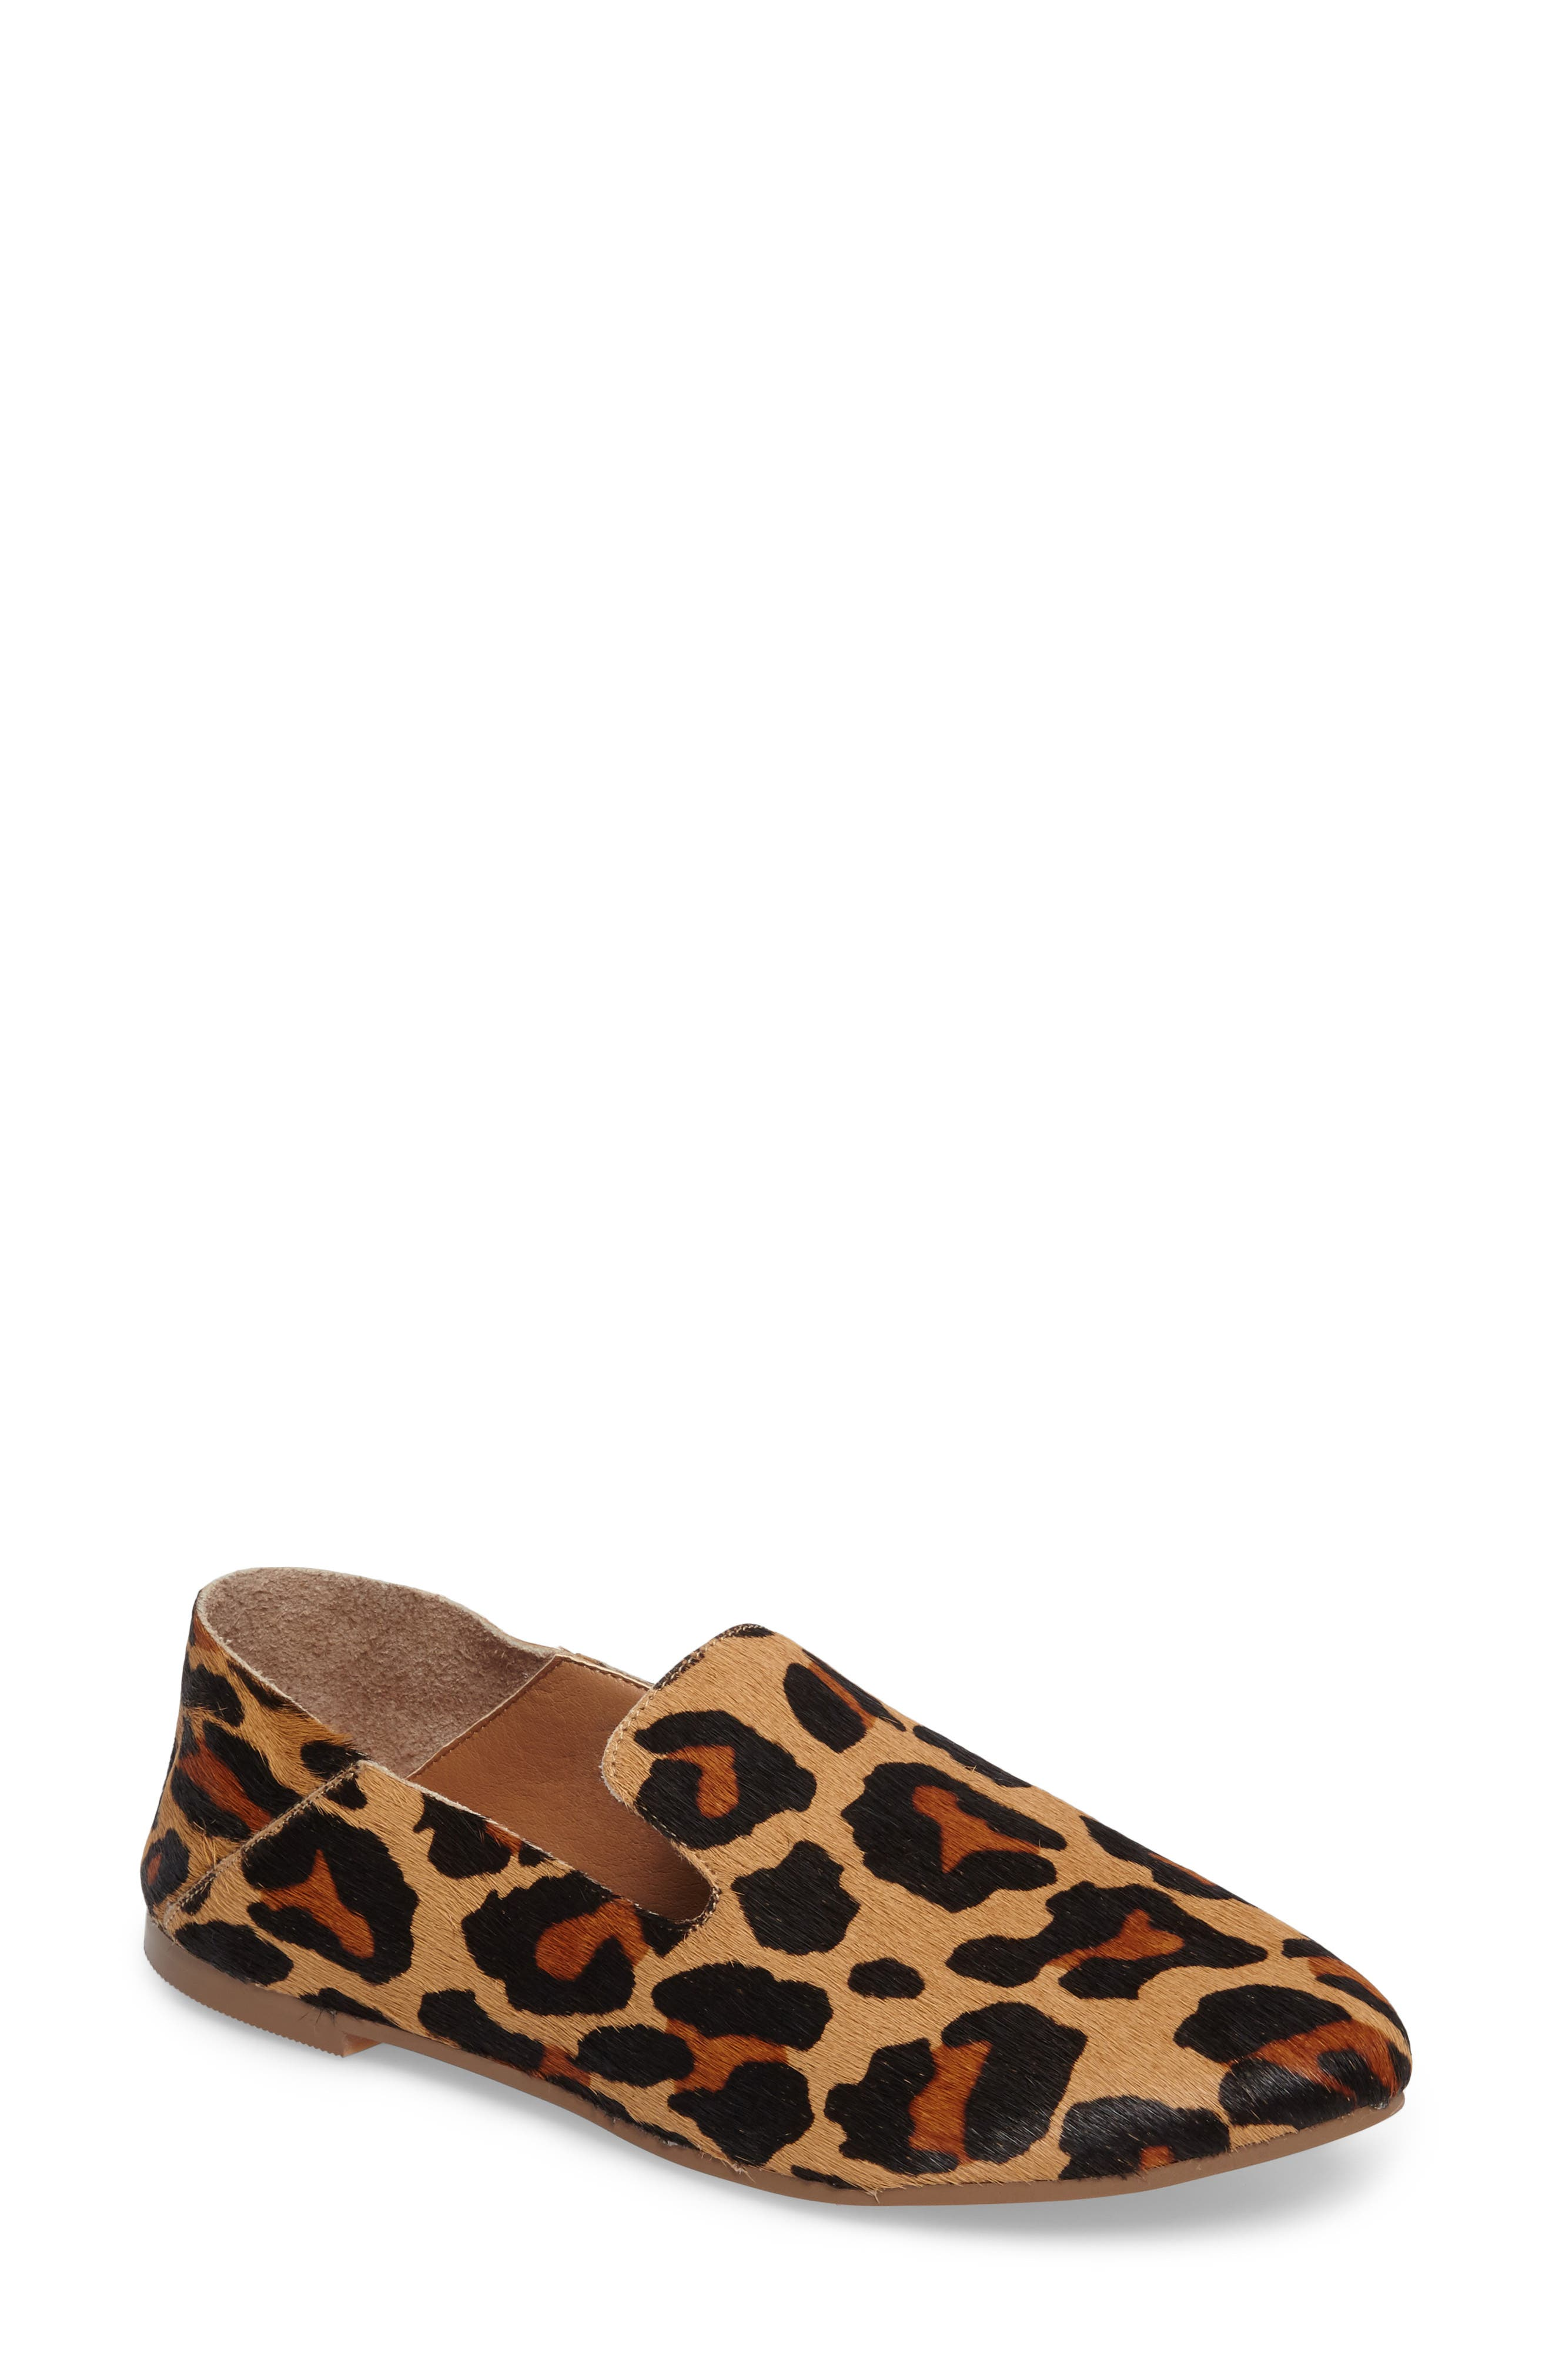 Alternate Image 1 Selected - Halogen® Sylvia Flat (Women)